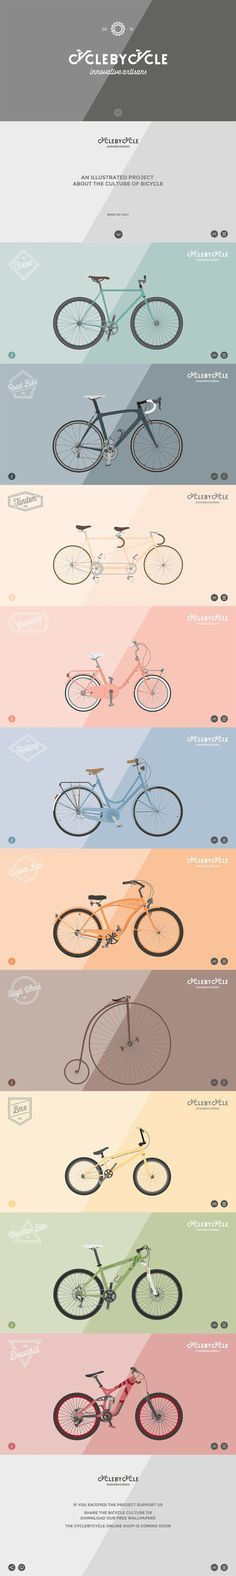 CycleByCycle. What's your favorite? (More design inspiration at www.aldenchong.com):